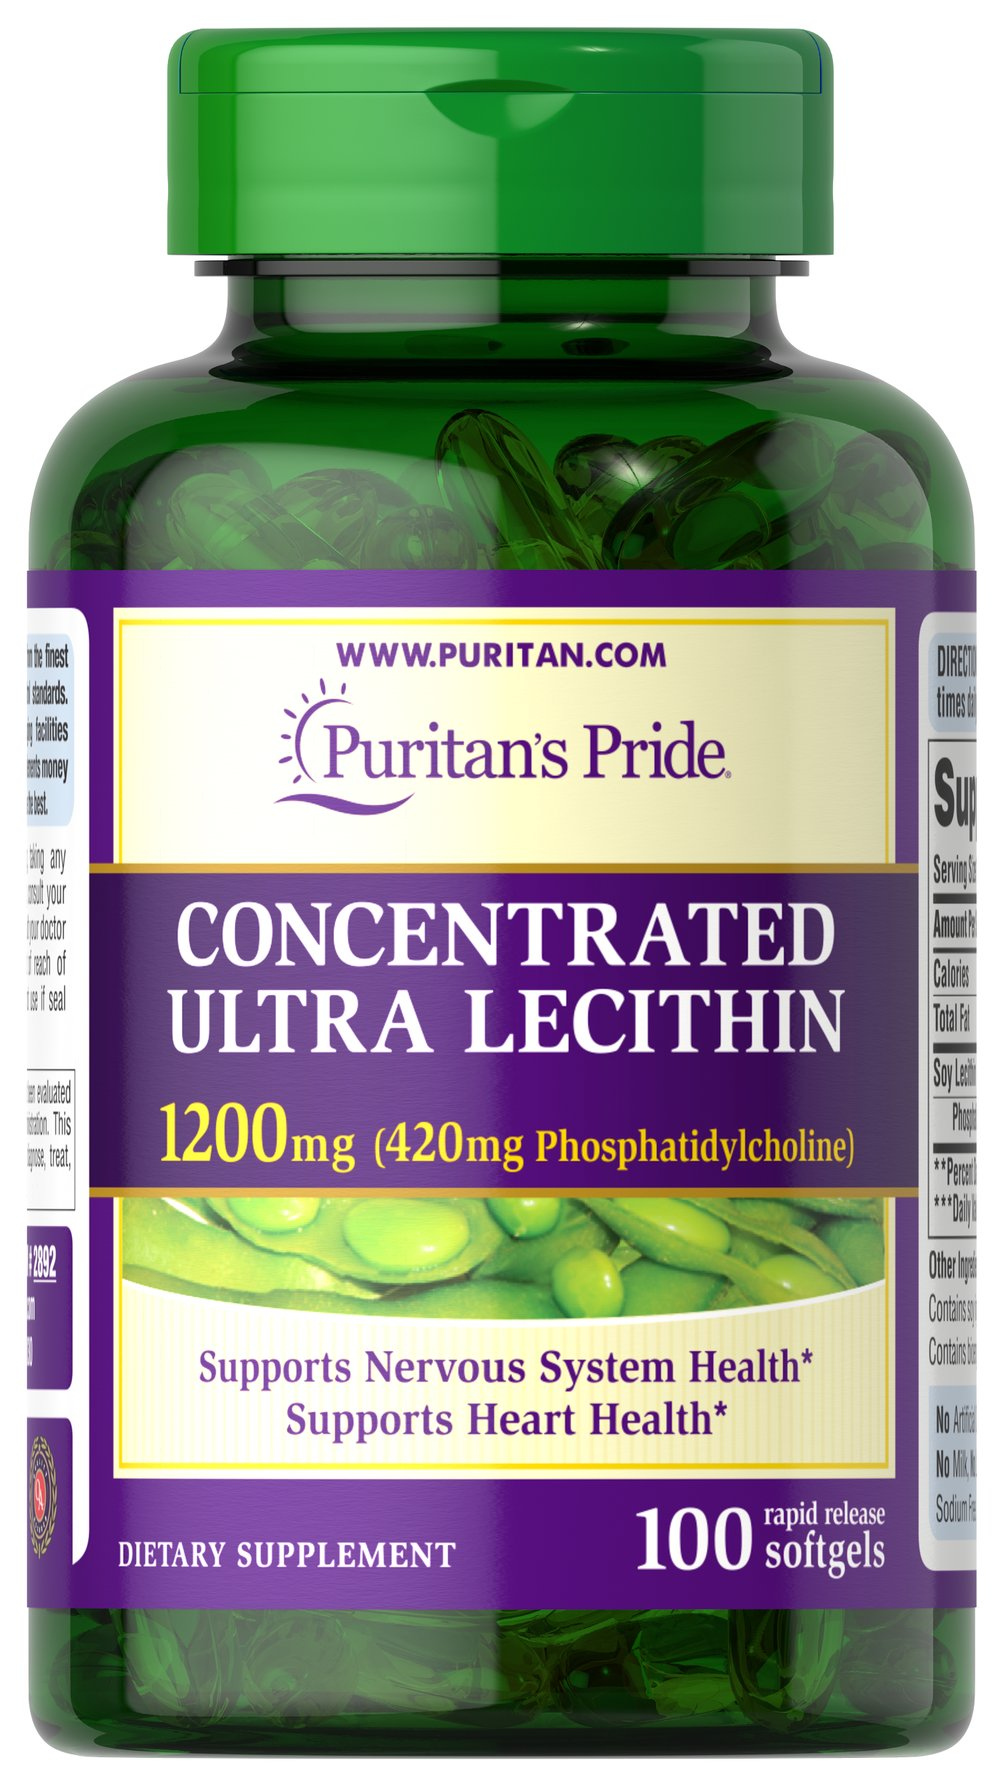 Concentrated Ultra Lecithin 1200 mg <p>Promotes healthy brain function**</p><p>Assists with cardiovascular health**</p><p>Contributes to a healthy nervous system**</p><p>Our highest potency Lecithin product to date++</p><p>One softgel provides you with a whopping 420 mg of naturally sourced Phosphatidylcholine, a vital part of the B Vitamin Complex.**</p> 100 Softgels 1200 mg $15.99